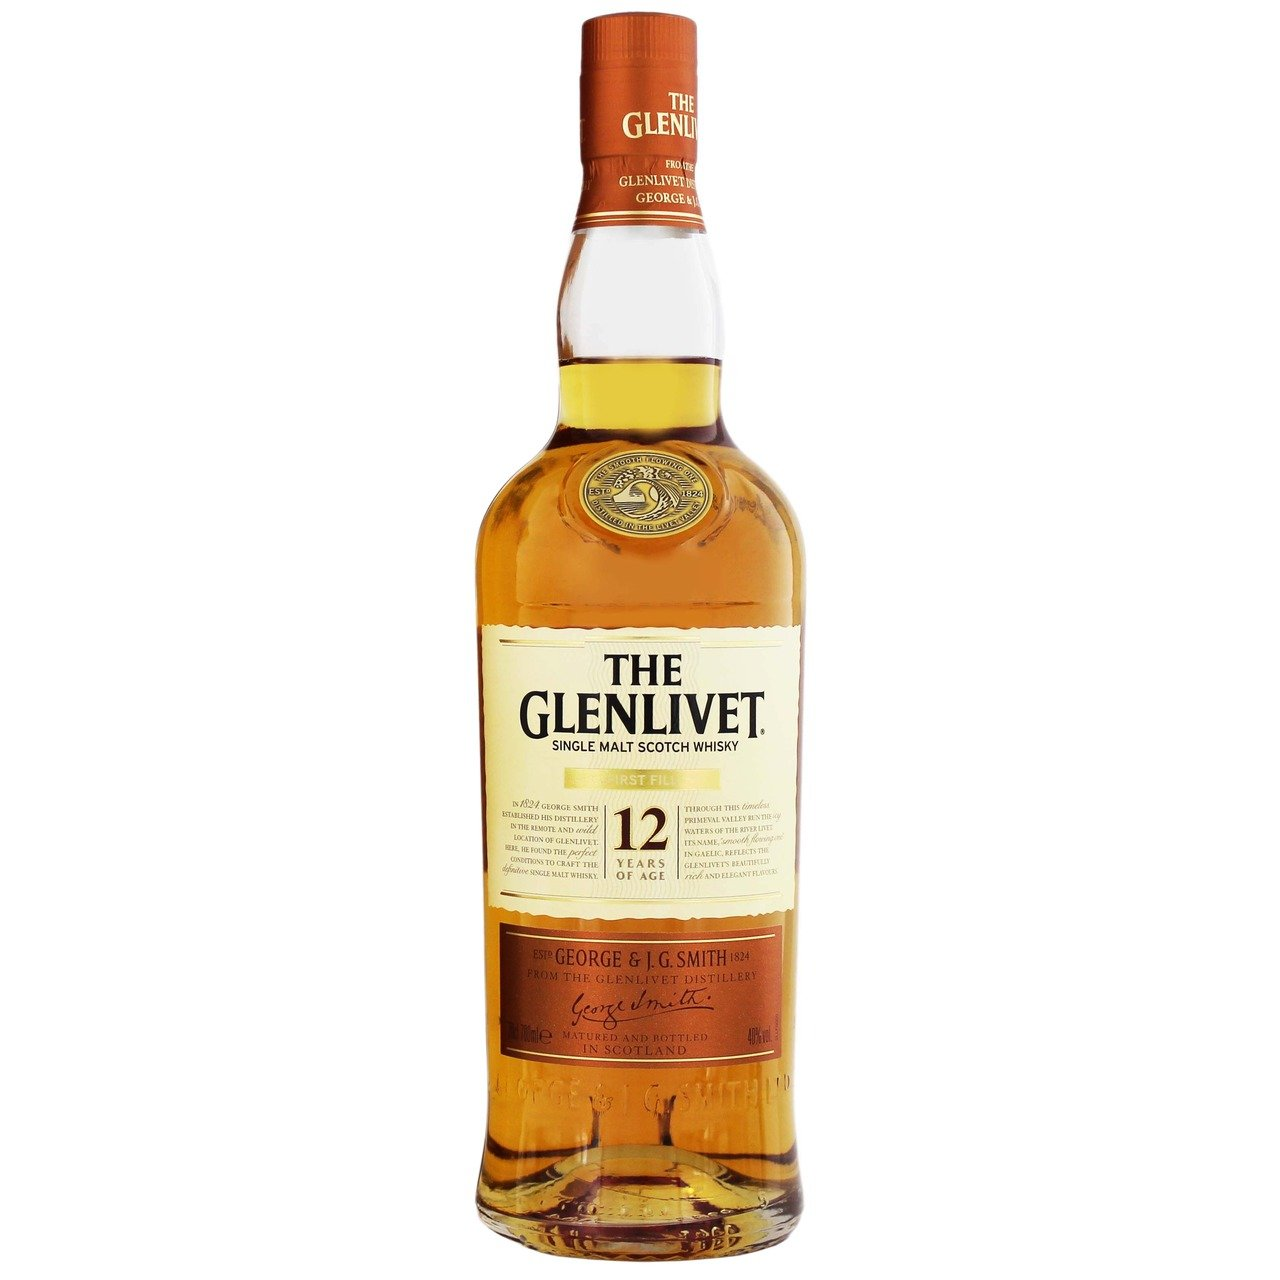 stl>Glenlivet 12 Year Old Scotch Whisky - 750ml